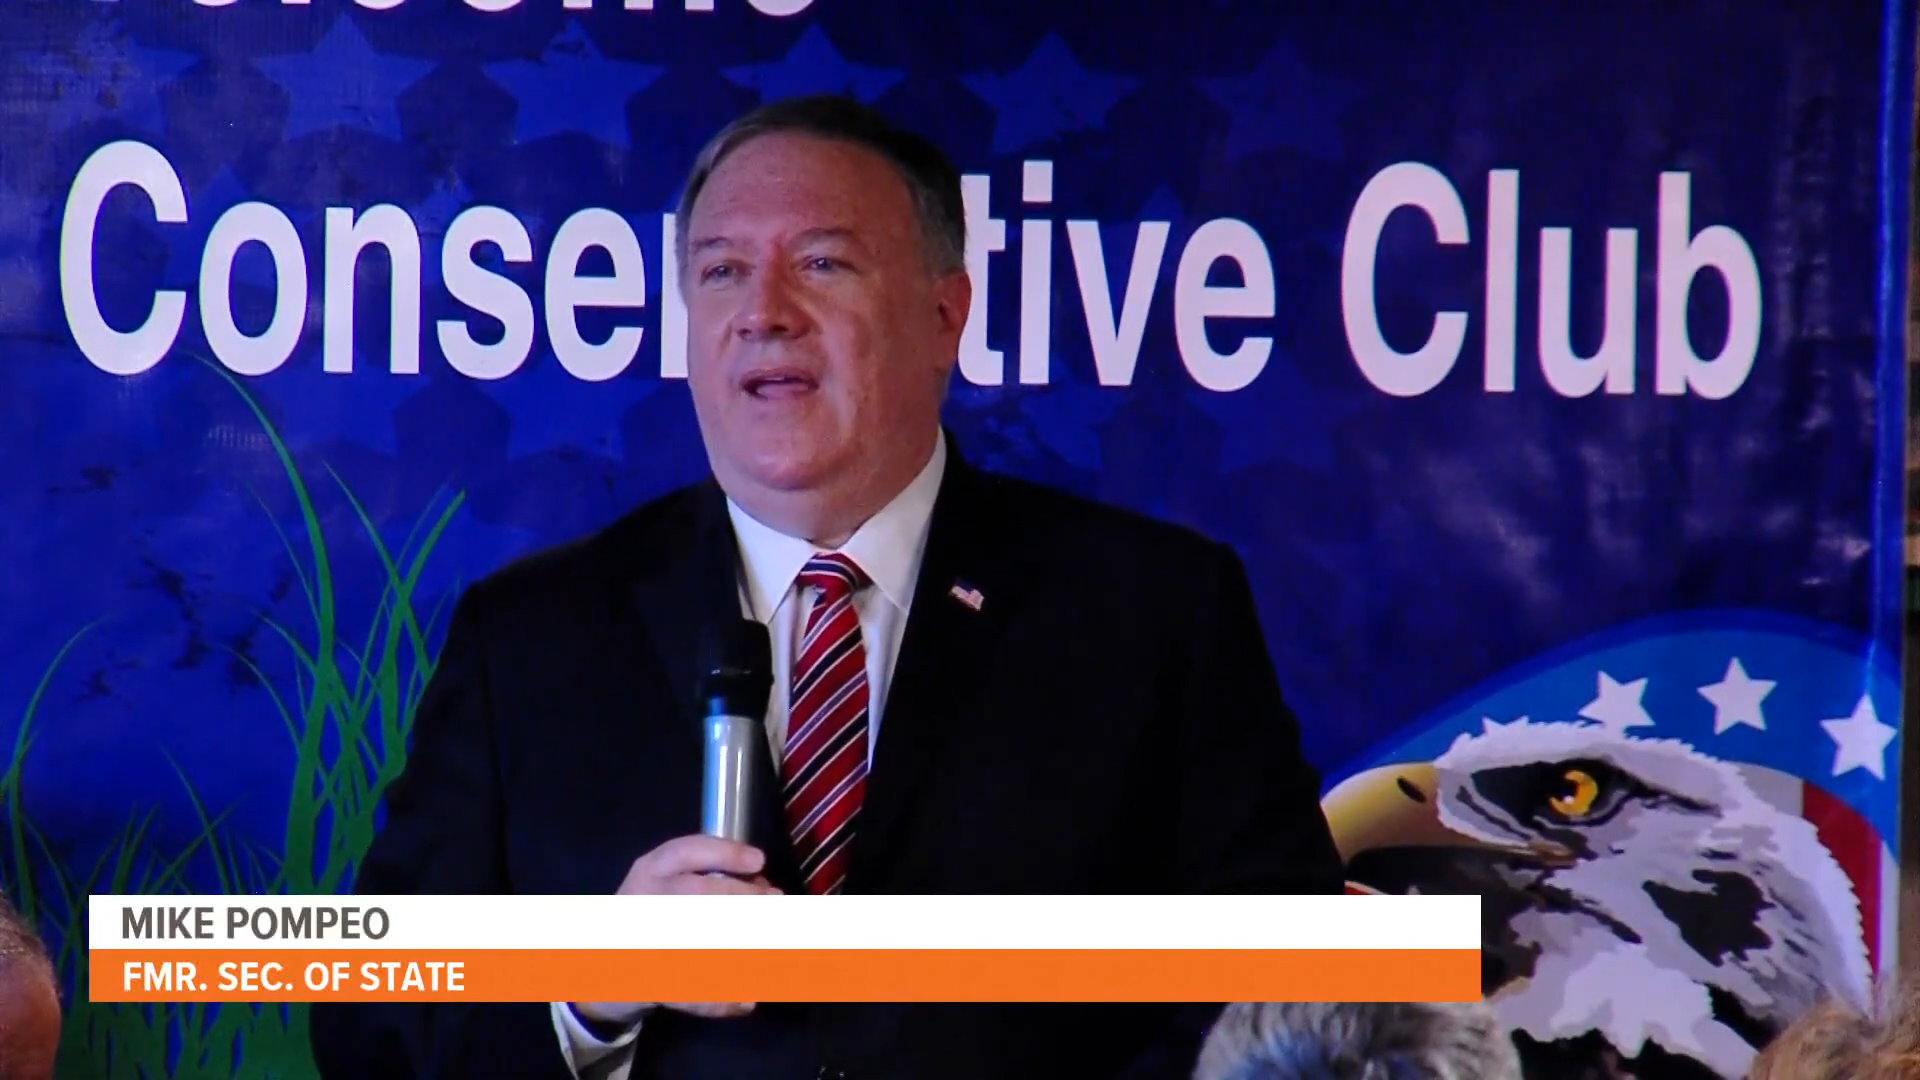 Mike Pompeo speaks at the Westside Conservative Club